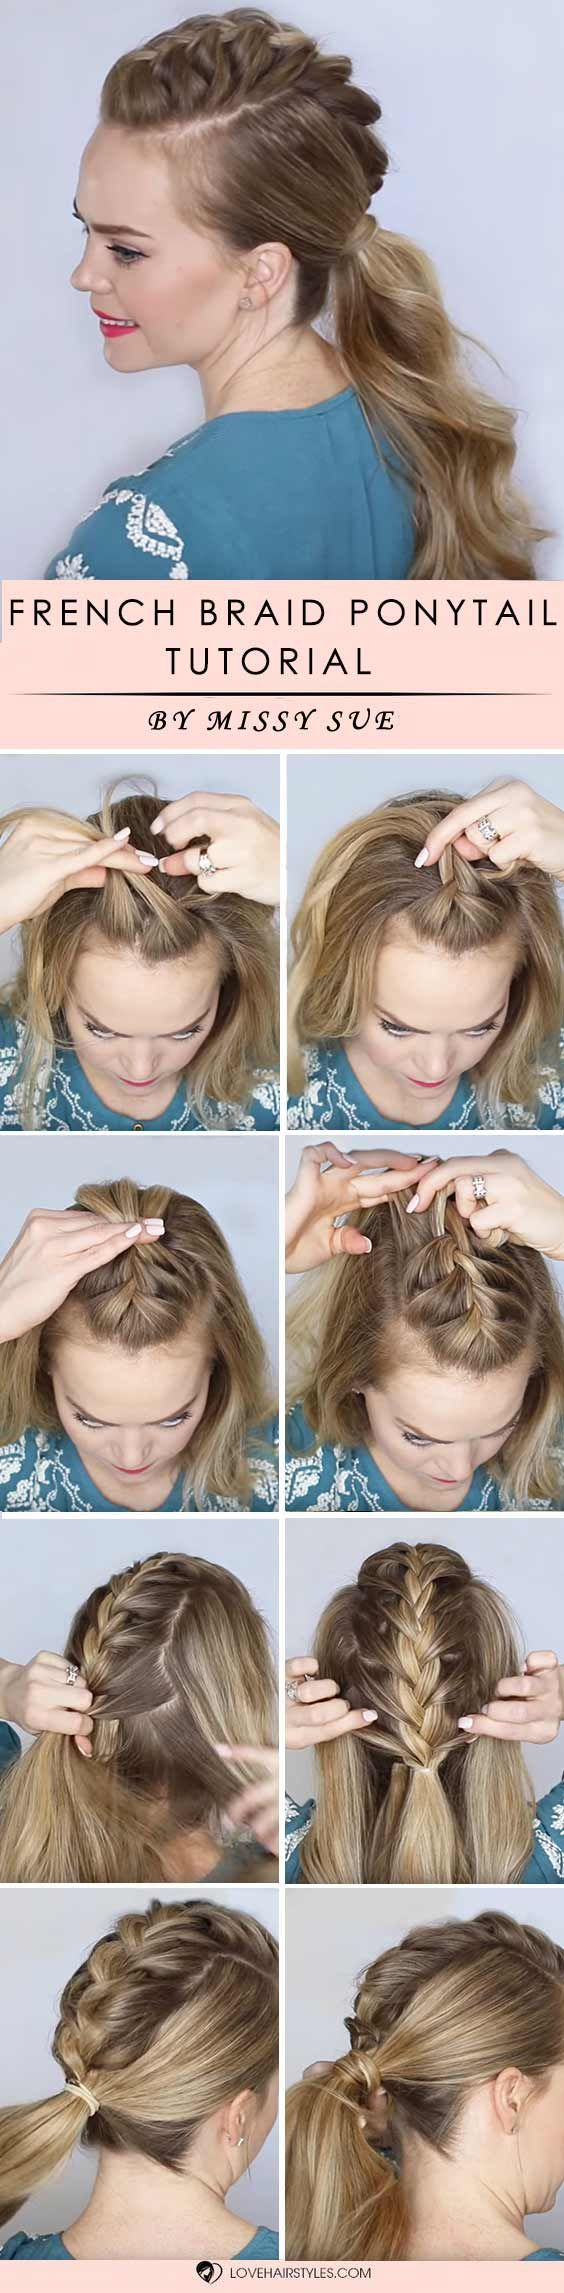 How to braid hair? We all ask this question from time to time, especially when we tried it all already and simple curling and straightening is no fun any longer. We have step by step tutorials that will teach you how to braid your tresses for a super adorable look. Check out our post! French Braided Ponytail #braidedhair #howtobraidhair #braidstutorial